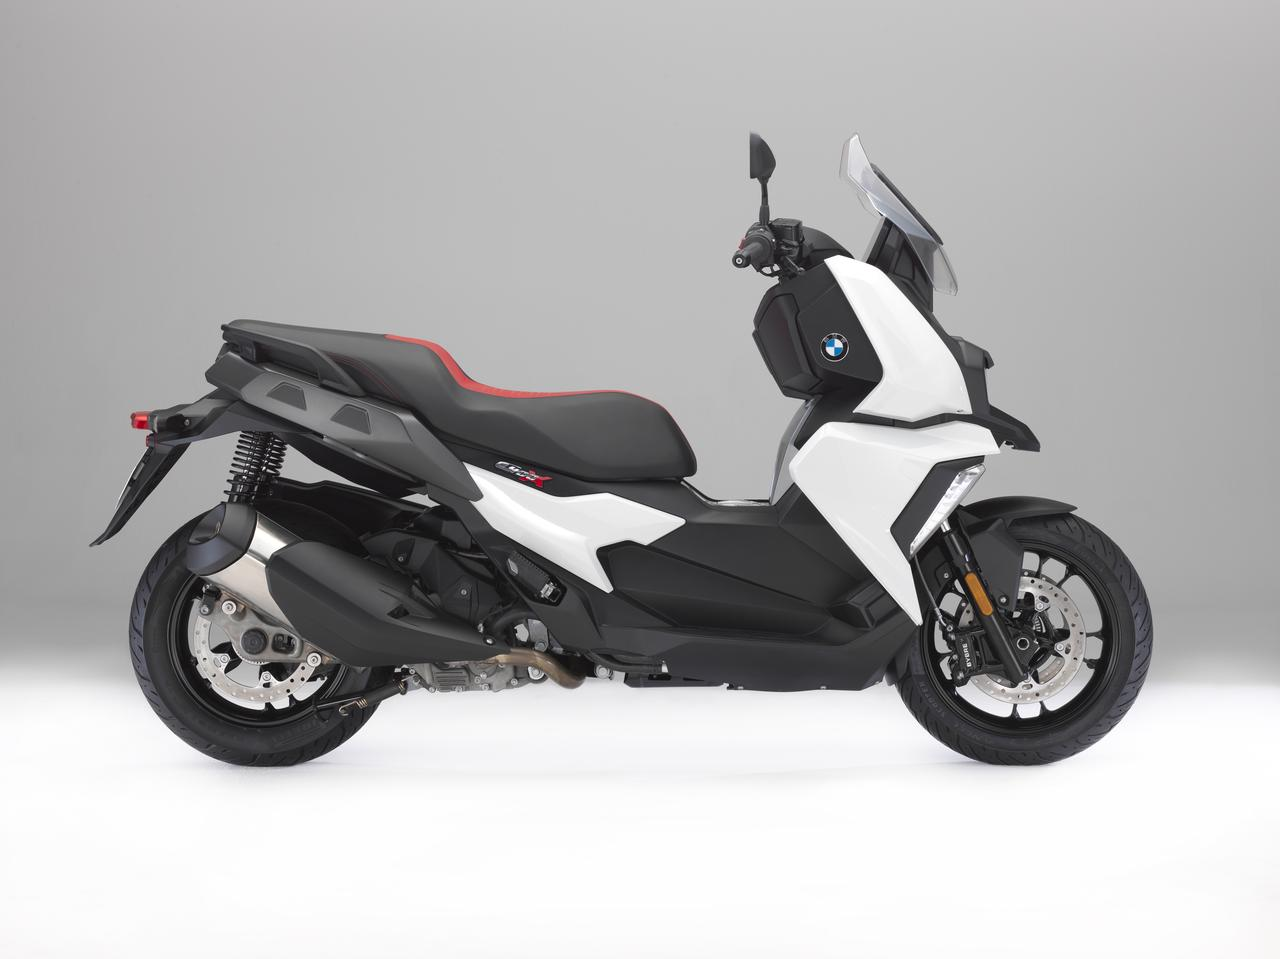 Images : 3番目の画像 - BMW C 400 X - LAWRENCE - Motorcycle x Cars + α = Your Life.